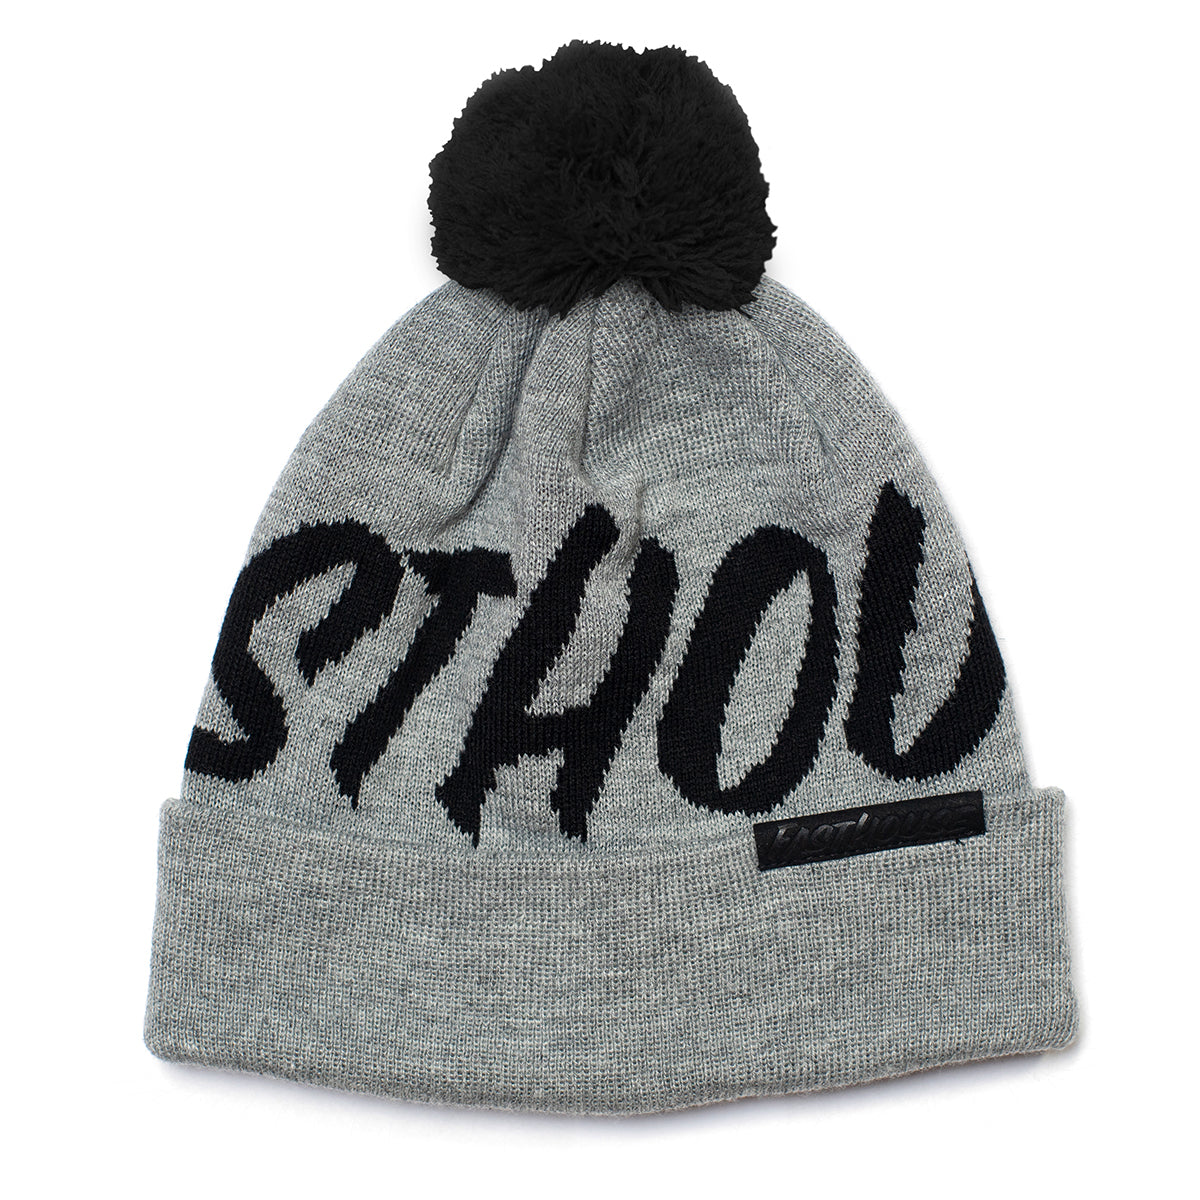 Fastball Beanie - Grey/Black